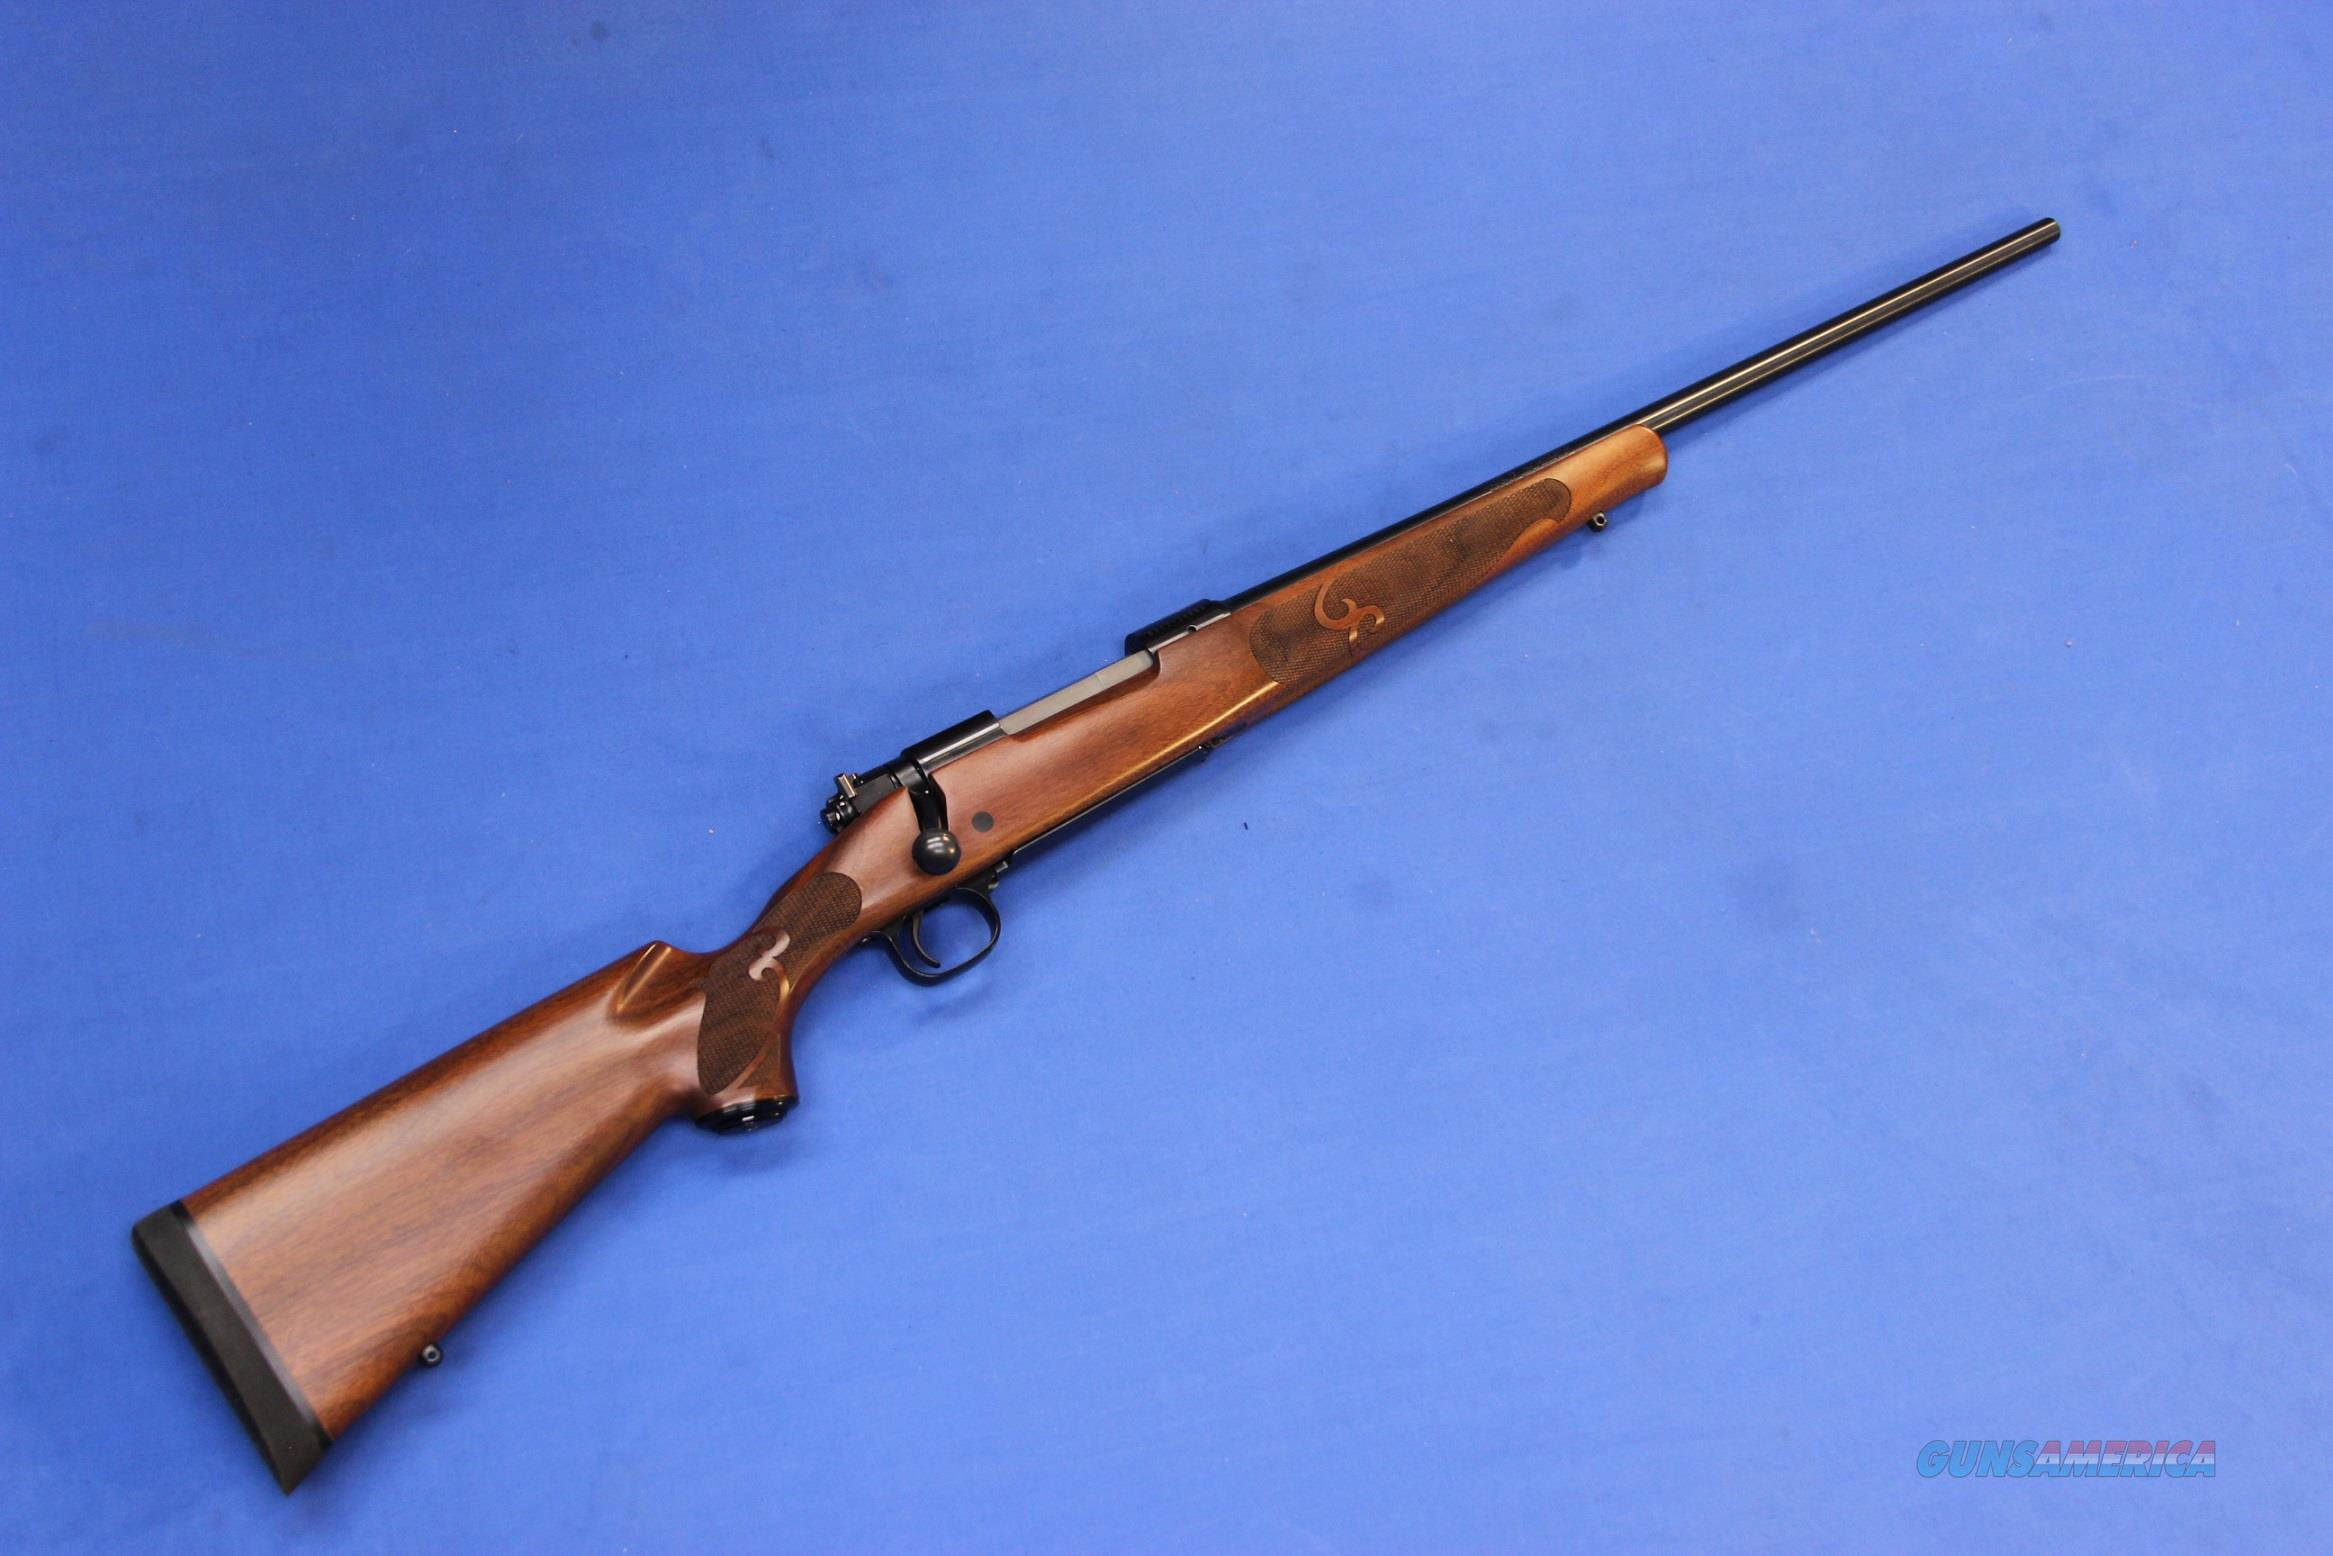 WINCHESTER 70 FEATHERWEIGHT .257 ROBERTS - EXCELLENT w/ FACTORY BOX  Guns > Rifles > Winchester Rifles - Modern Bolt/Auto/Single > Model 70 > Post-64